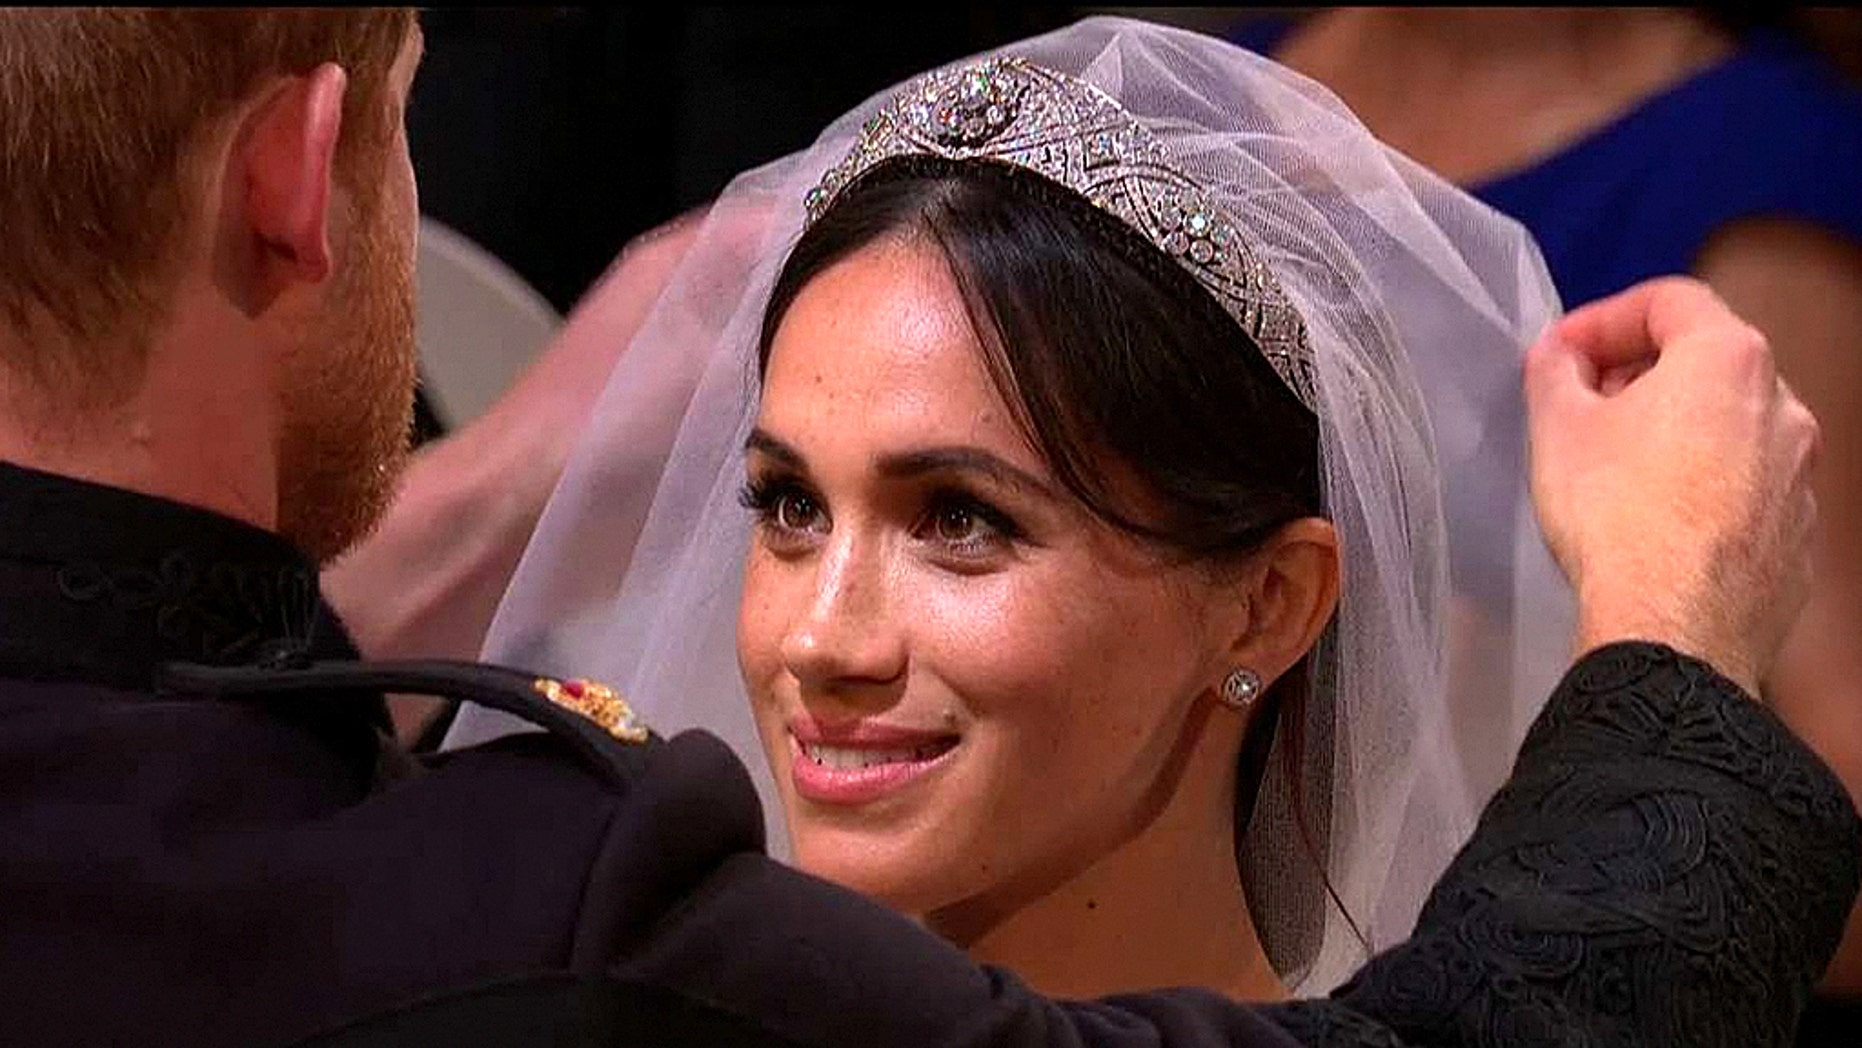 Meghan Markle's wedding tiara was lent to her by Queen Elizabeth II.